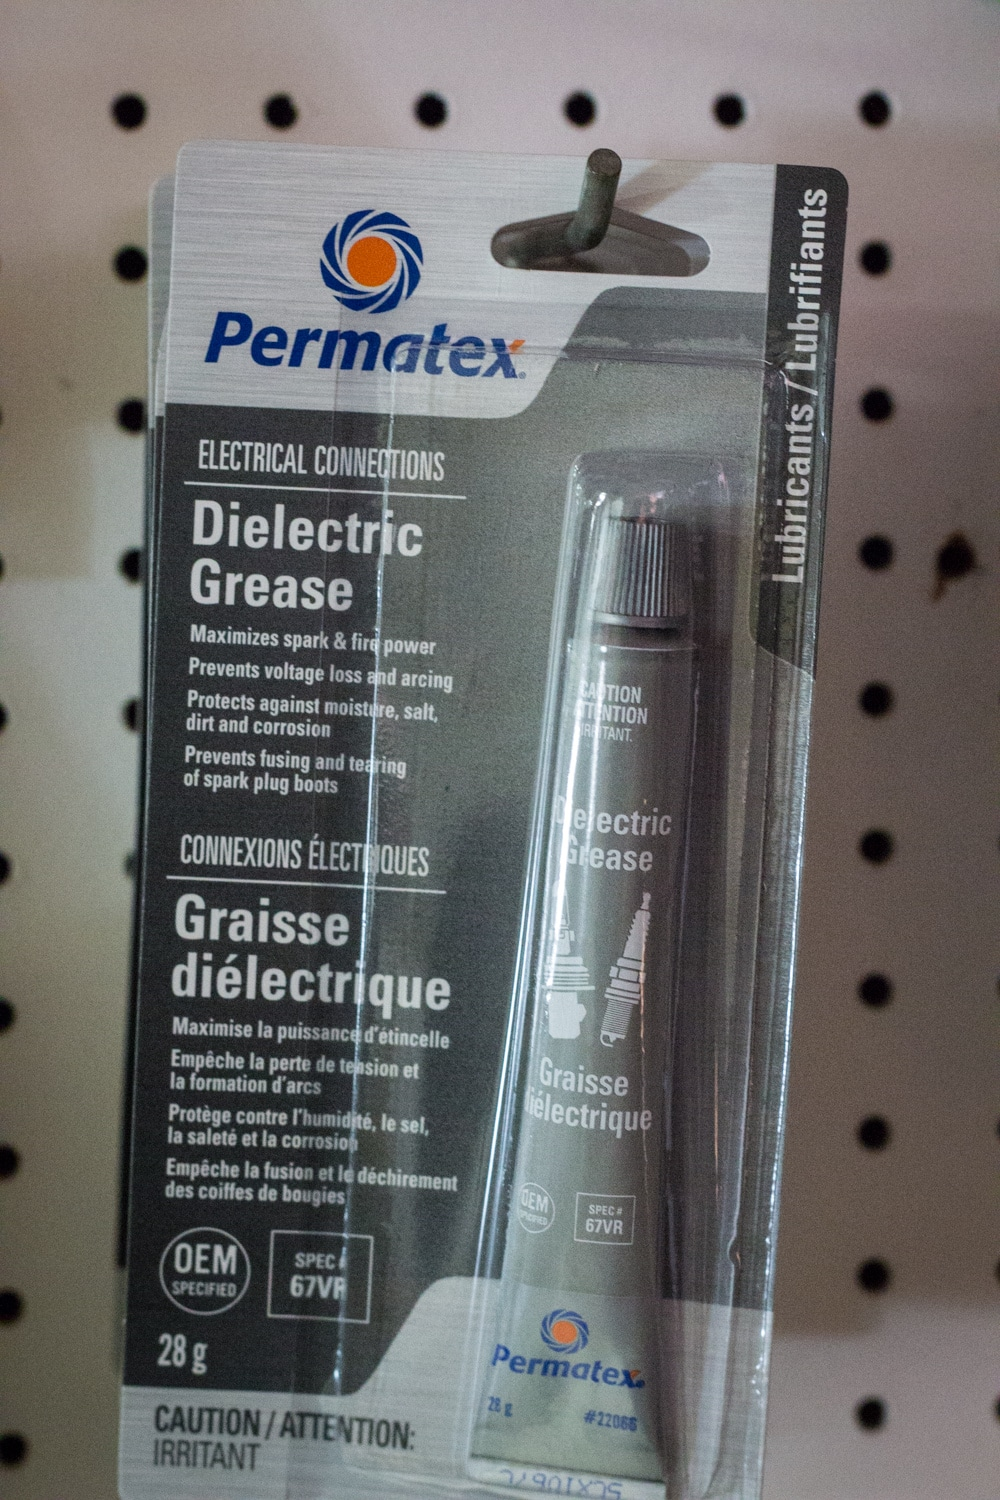 Permatex Dialectric Grease